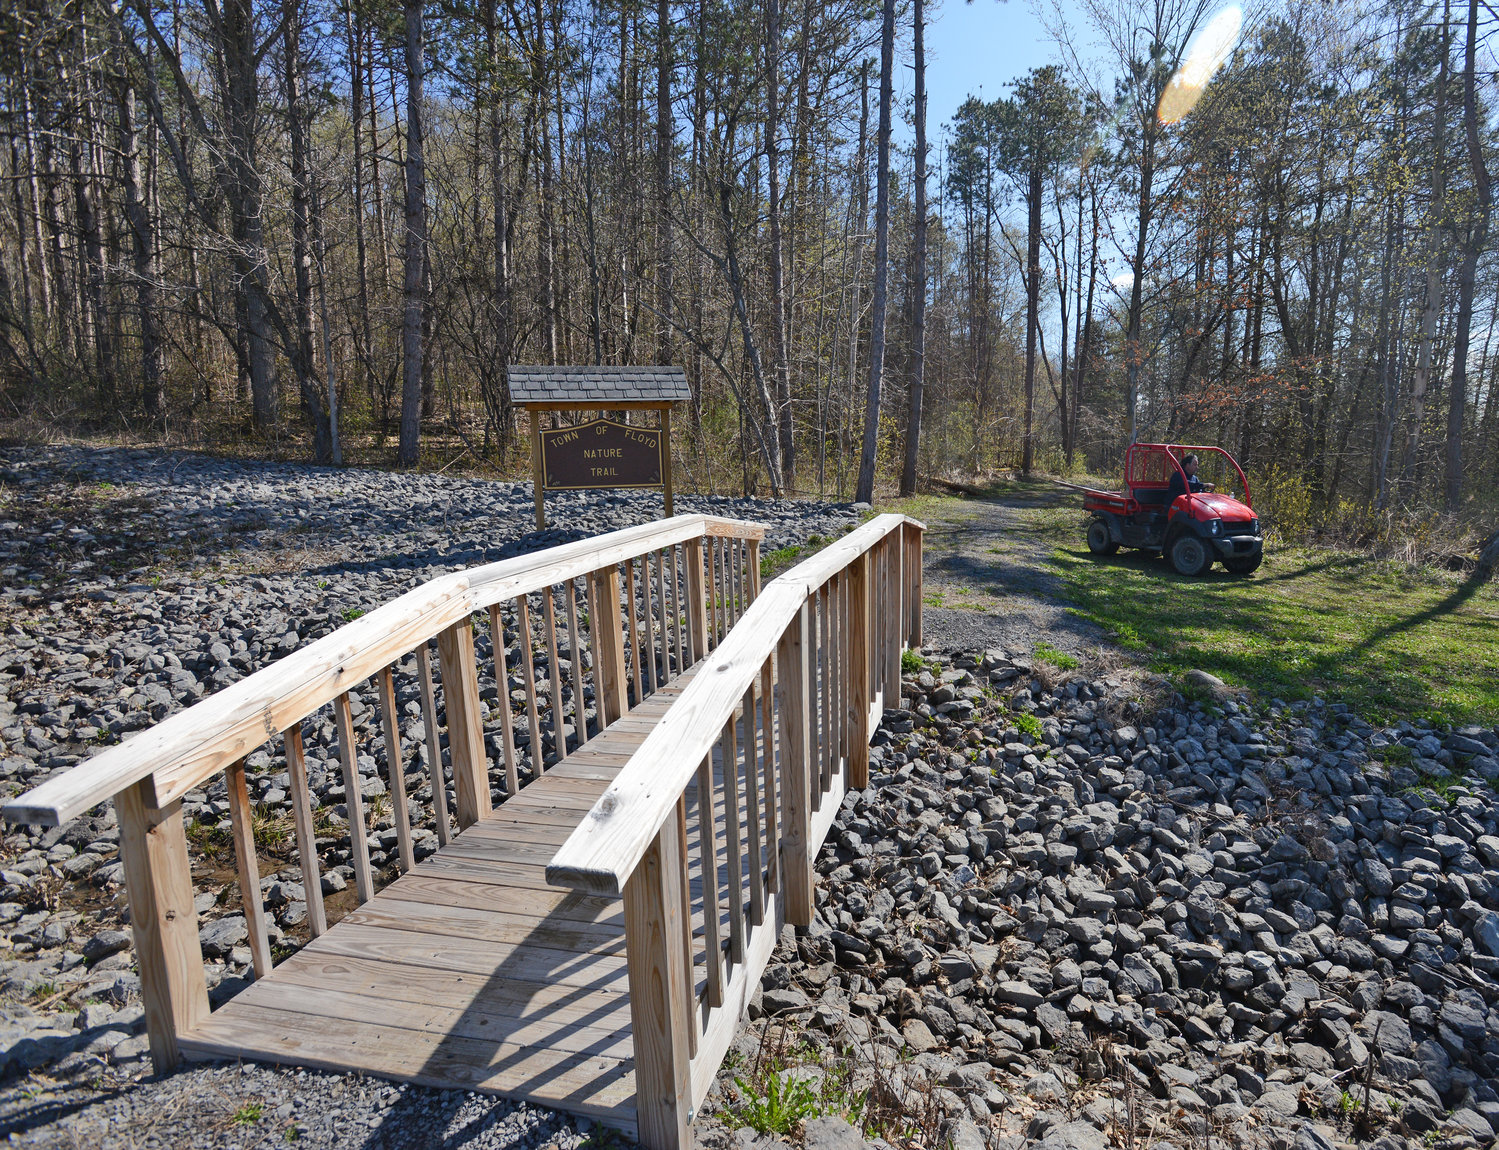 PATH LESS TAKEN — A new foot bridge is installed at the entrance of the new Nature Trail in the Town of Floyd off Camroden Road. The trail is part of a major project in the town that includes park improvements, tree plantings and a new storage structure for road salt and sand.